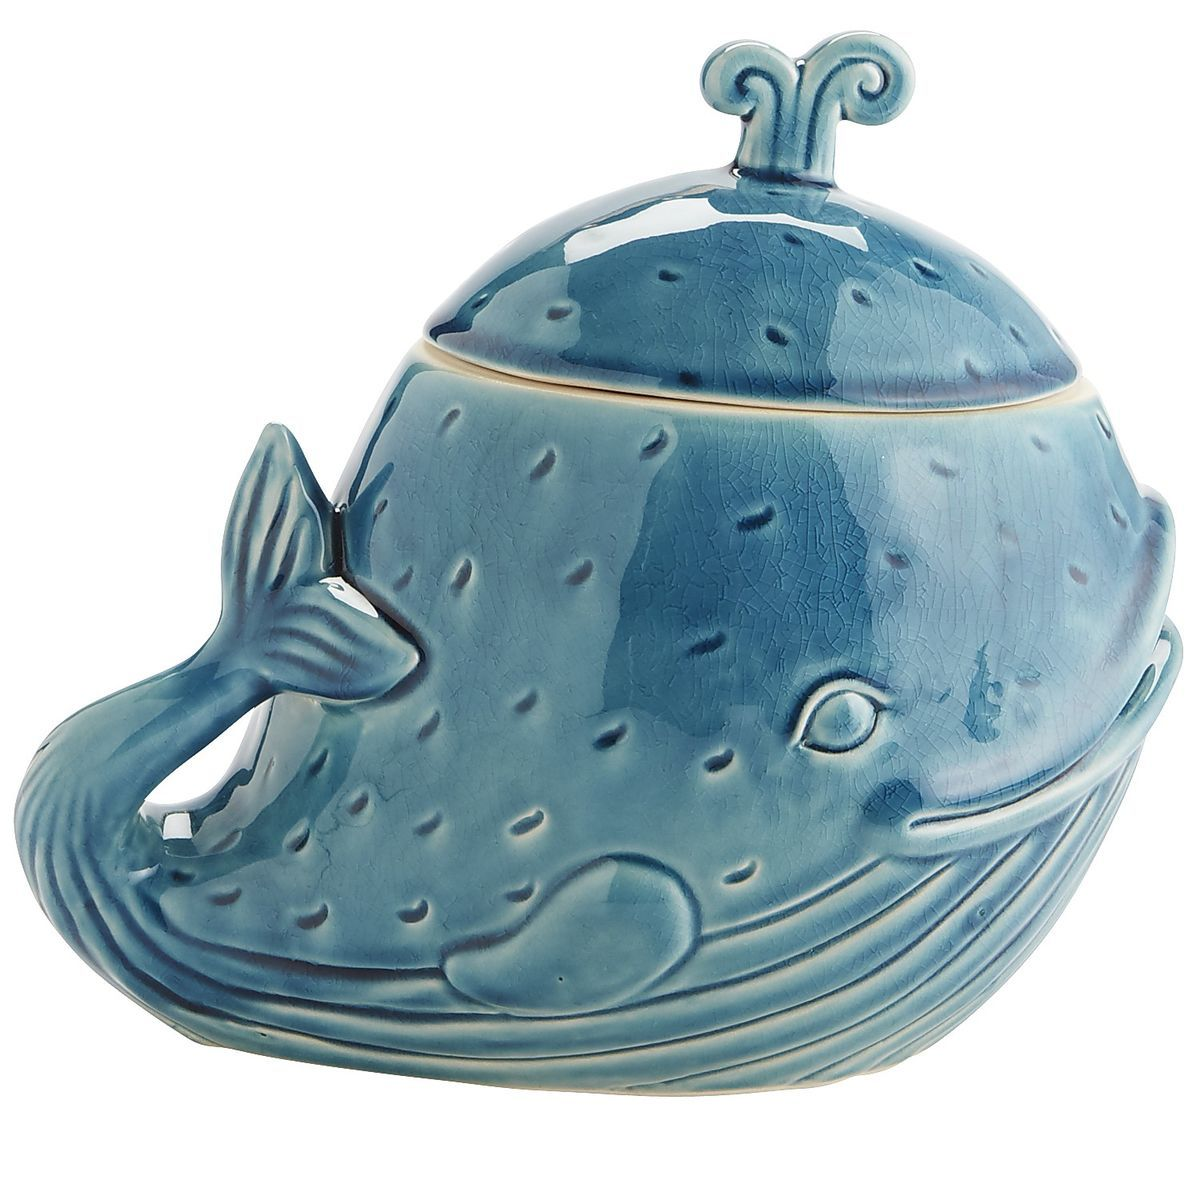 With A Whale Of A Story, Our Cookie Jar Is Happy To Tell